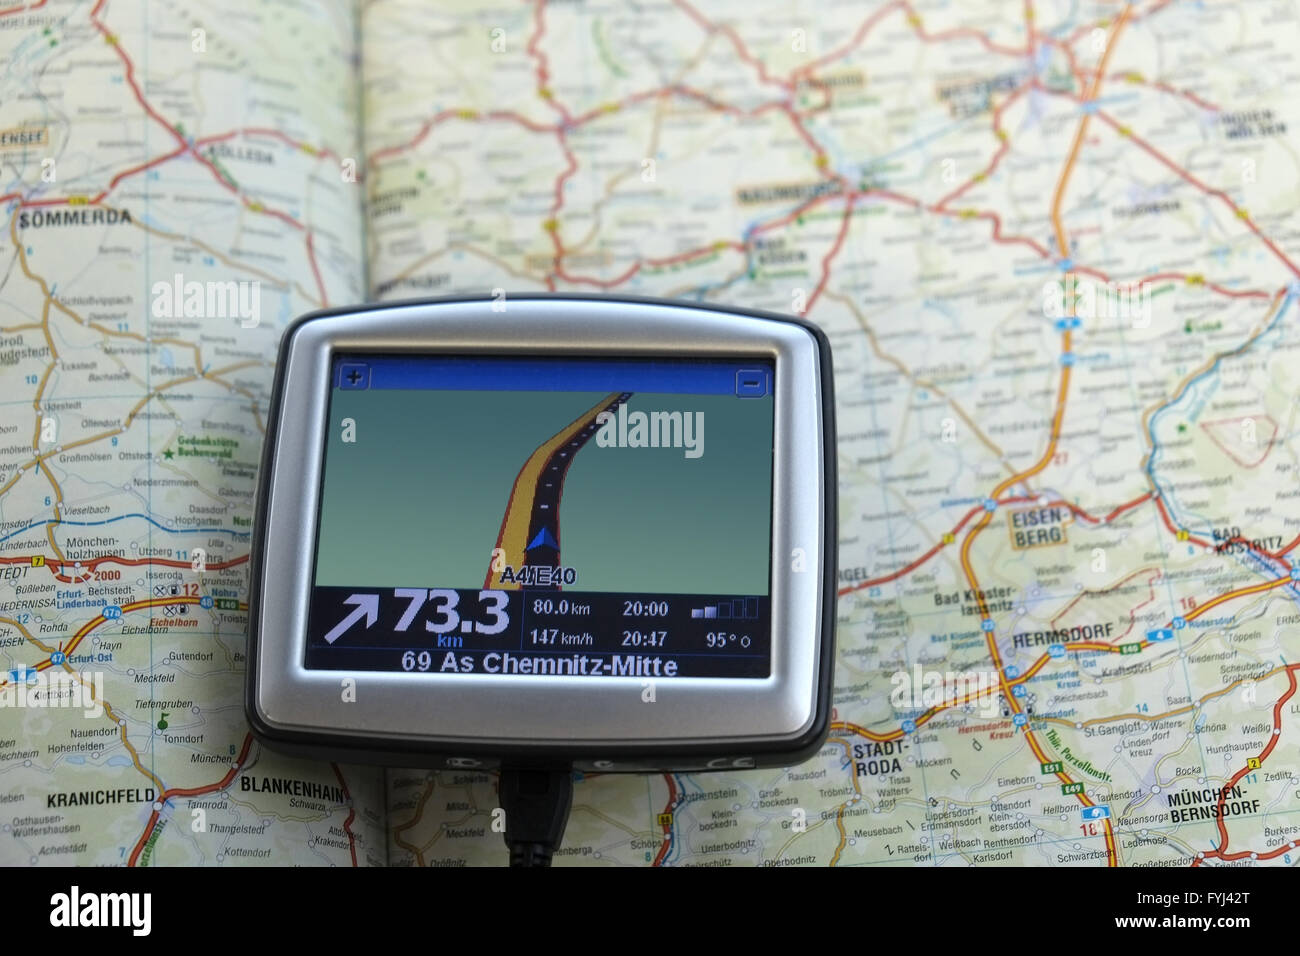 Road atlas and Navigation system - Stock Image